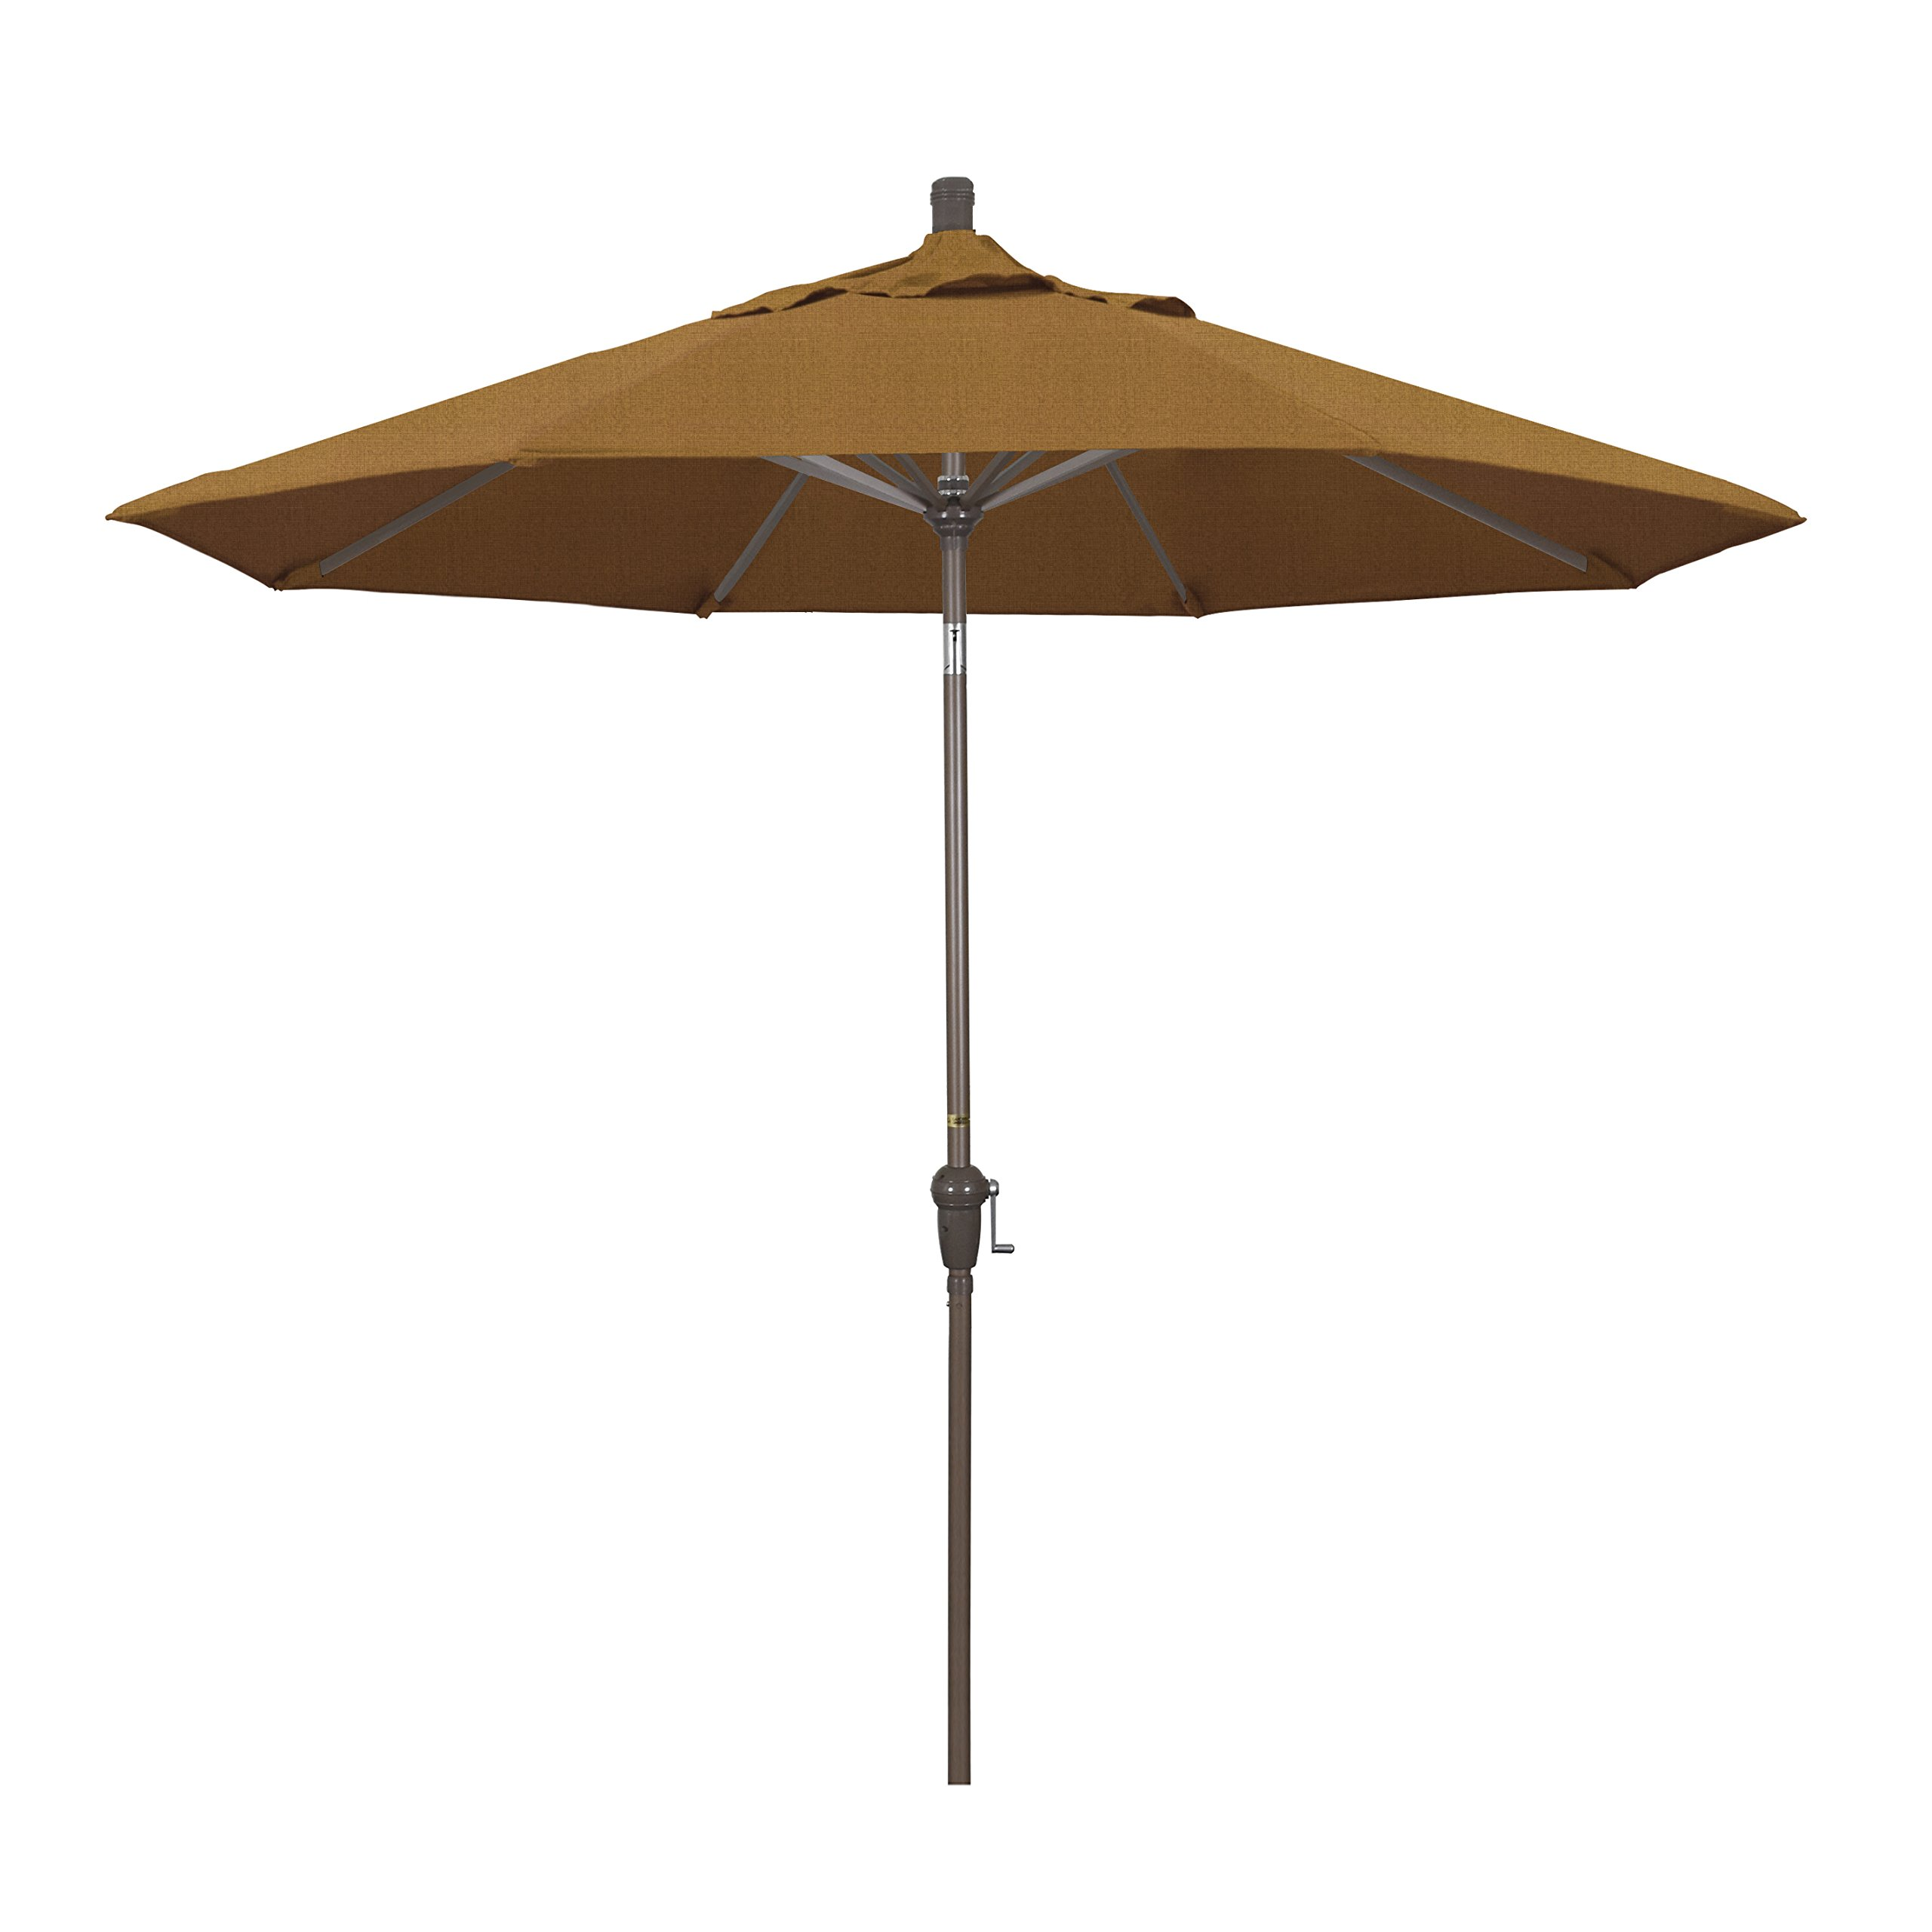 California Umbrella 9' Round Aluminum Market Umbrella, Crank Lift, Auto Tilt, Champagne Pole, Pacifica Straw by California Umbrella